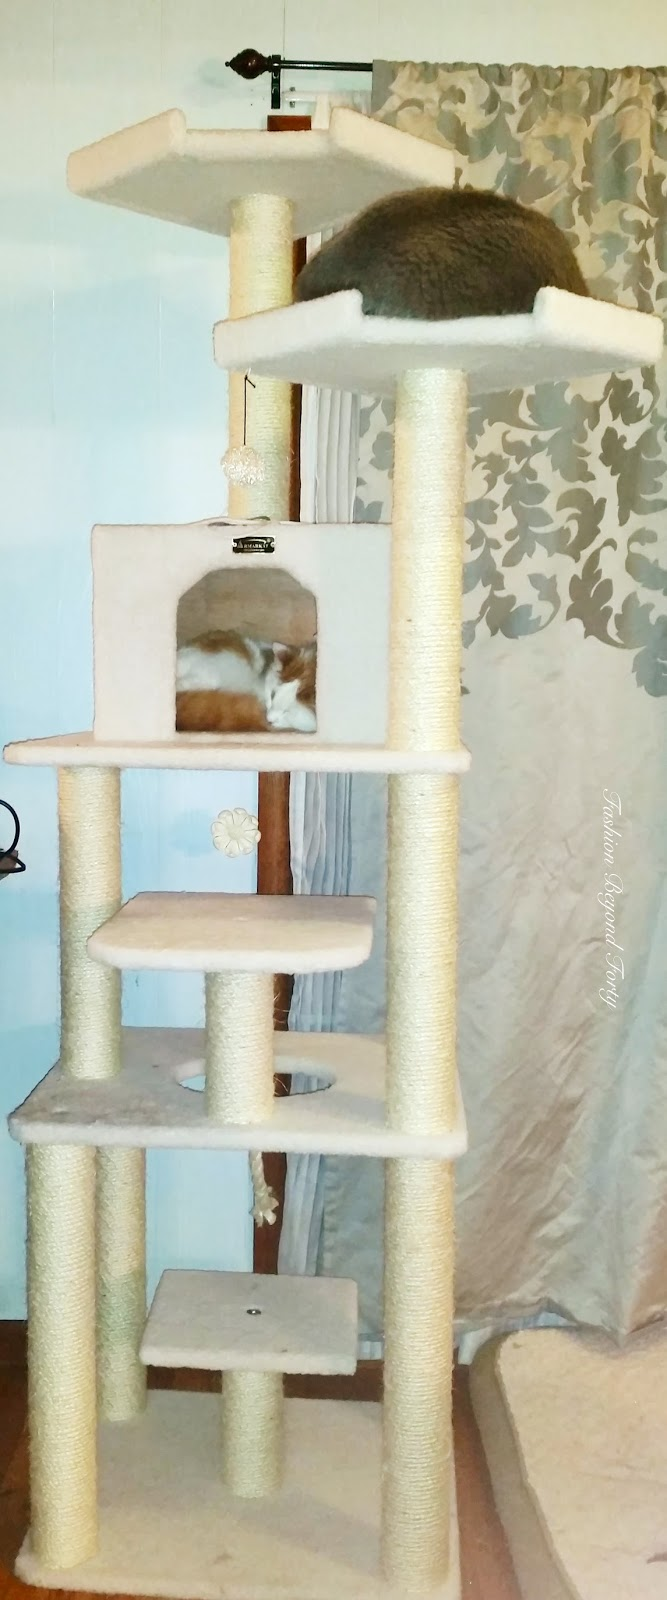 Armarkat Cat Tree from Chewy.com